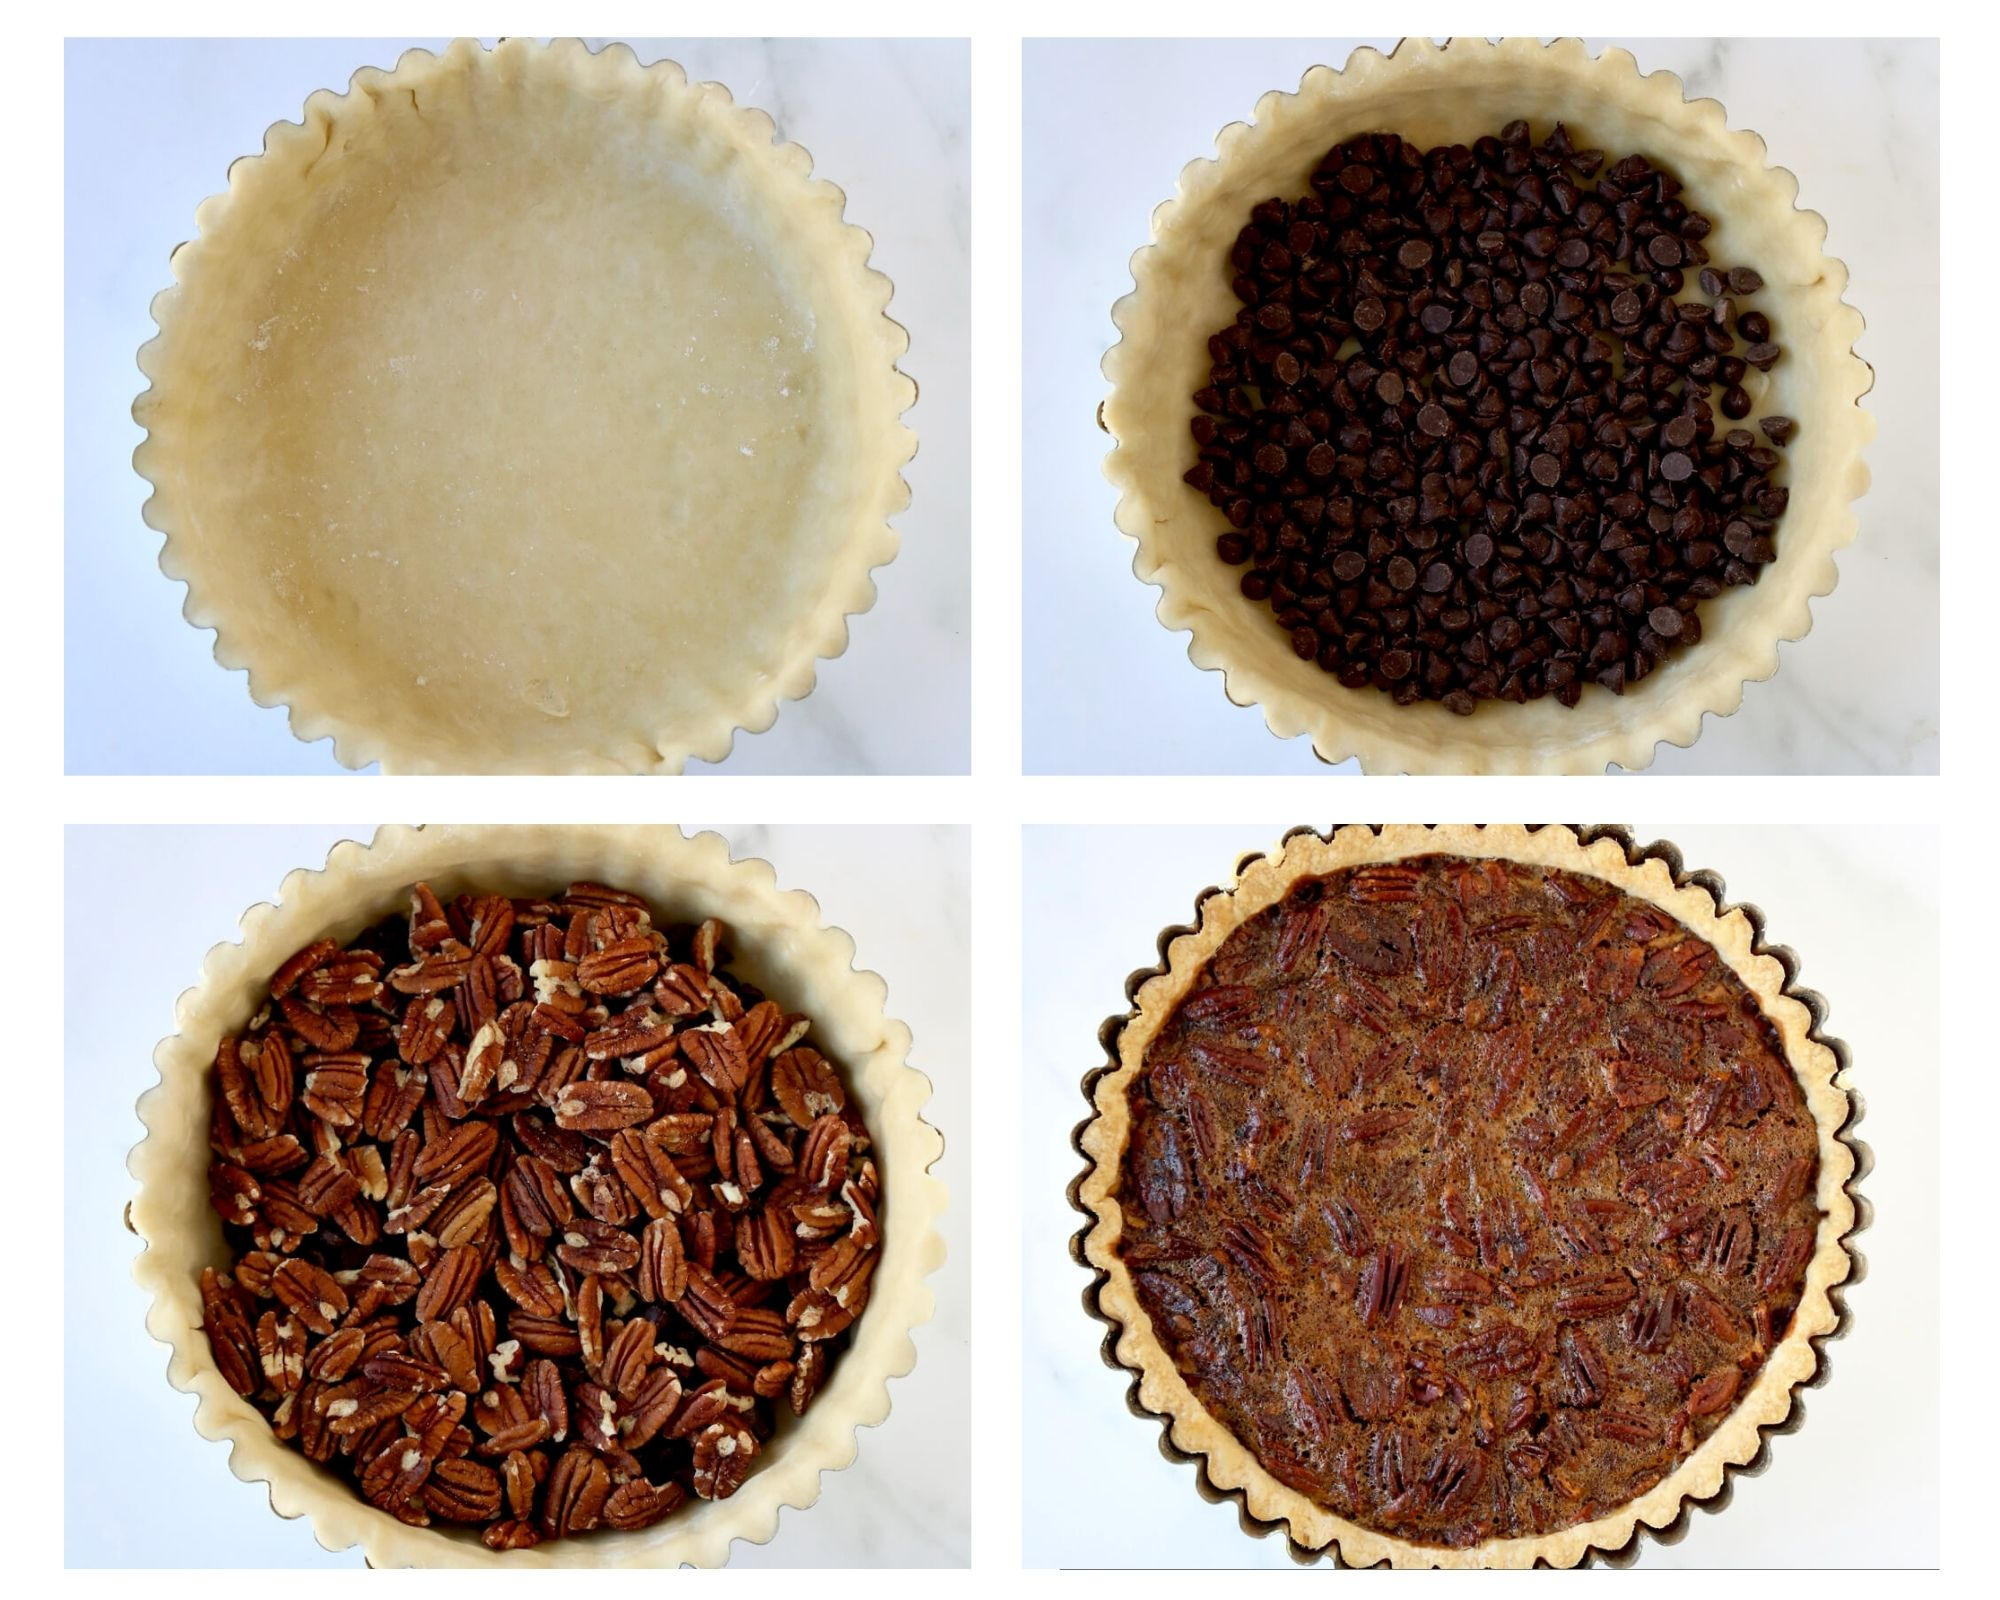 four images showing the process to make a pecan tart. First the crust in a tart shell, second the crust filled with chocolate chips, third the crust is filled with pecans and fourth the pecan tart is baked